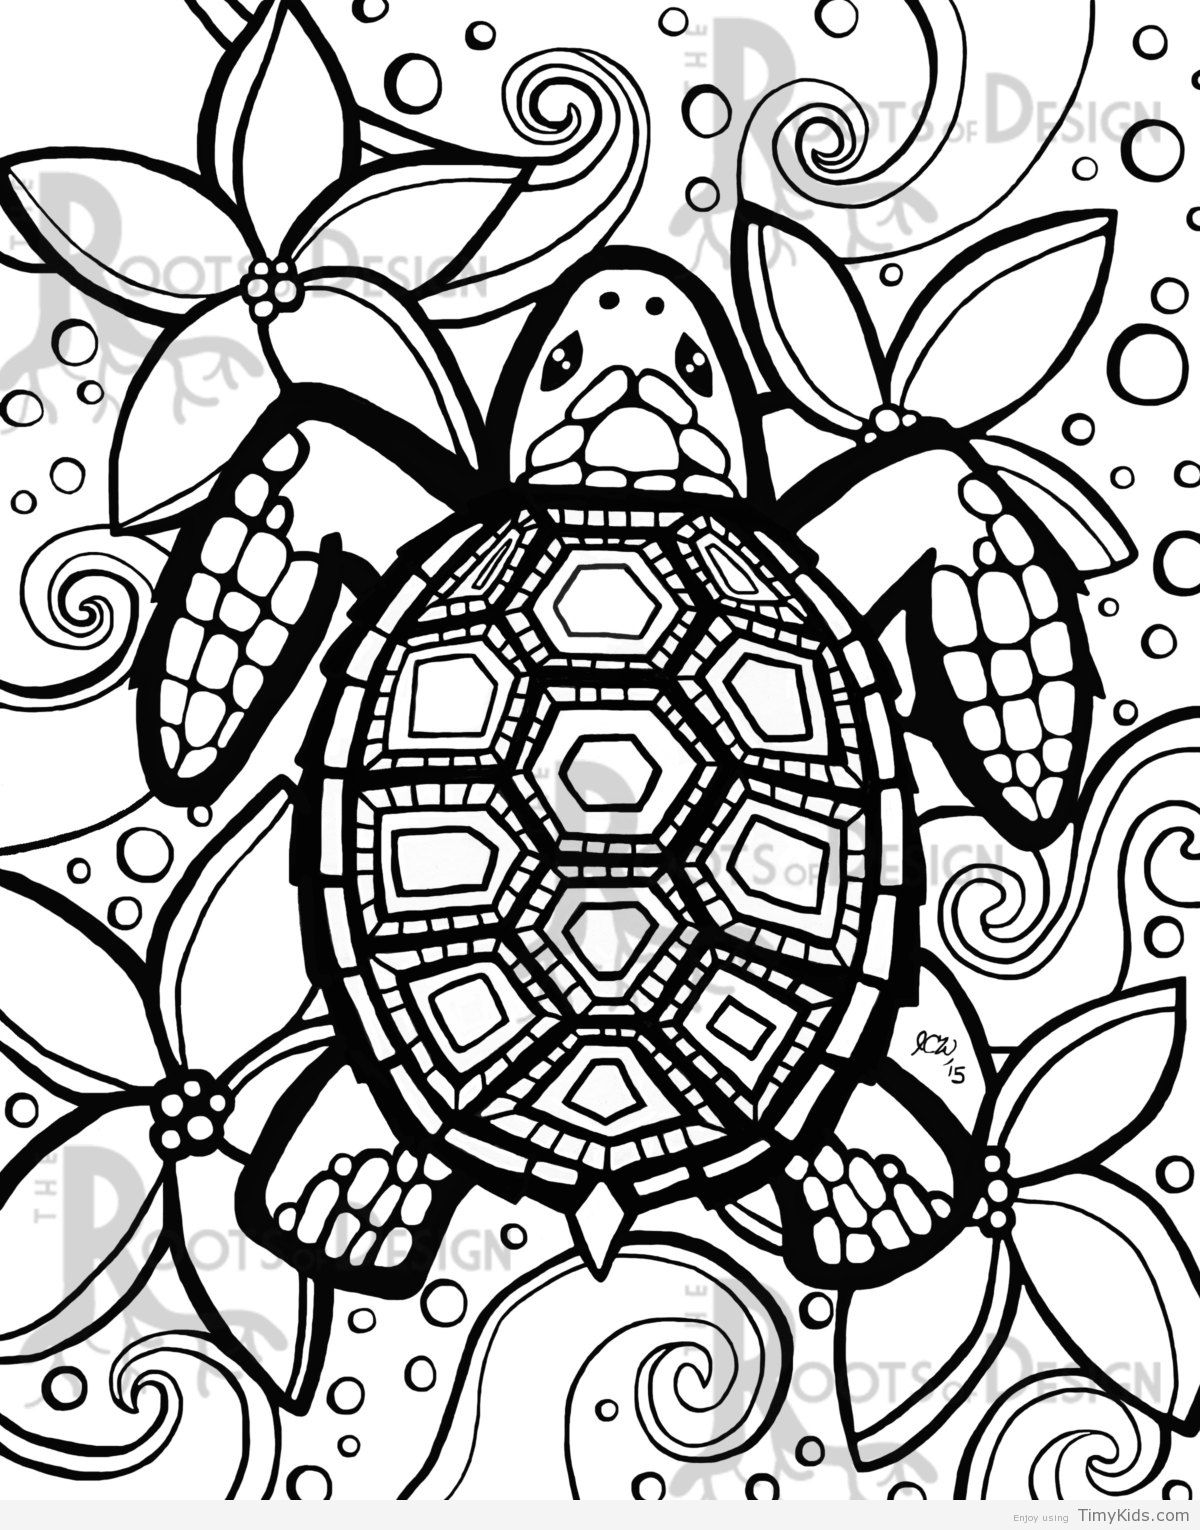 Turtle Coloring Pages  Download 12n - Free For kids